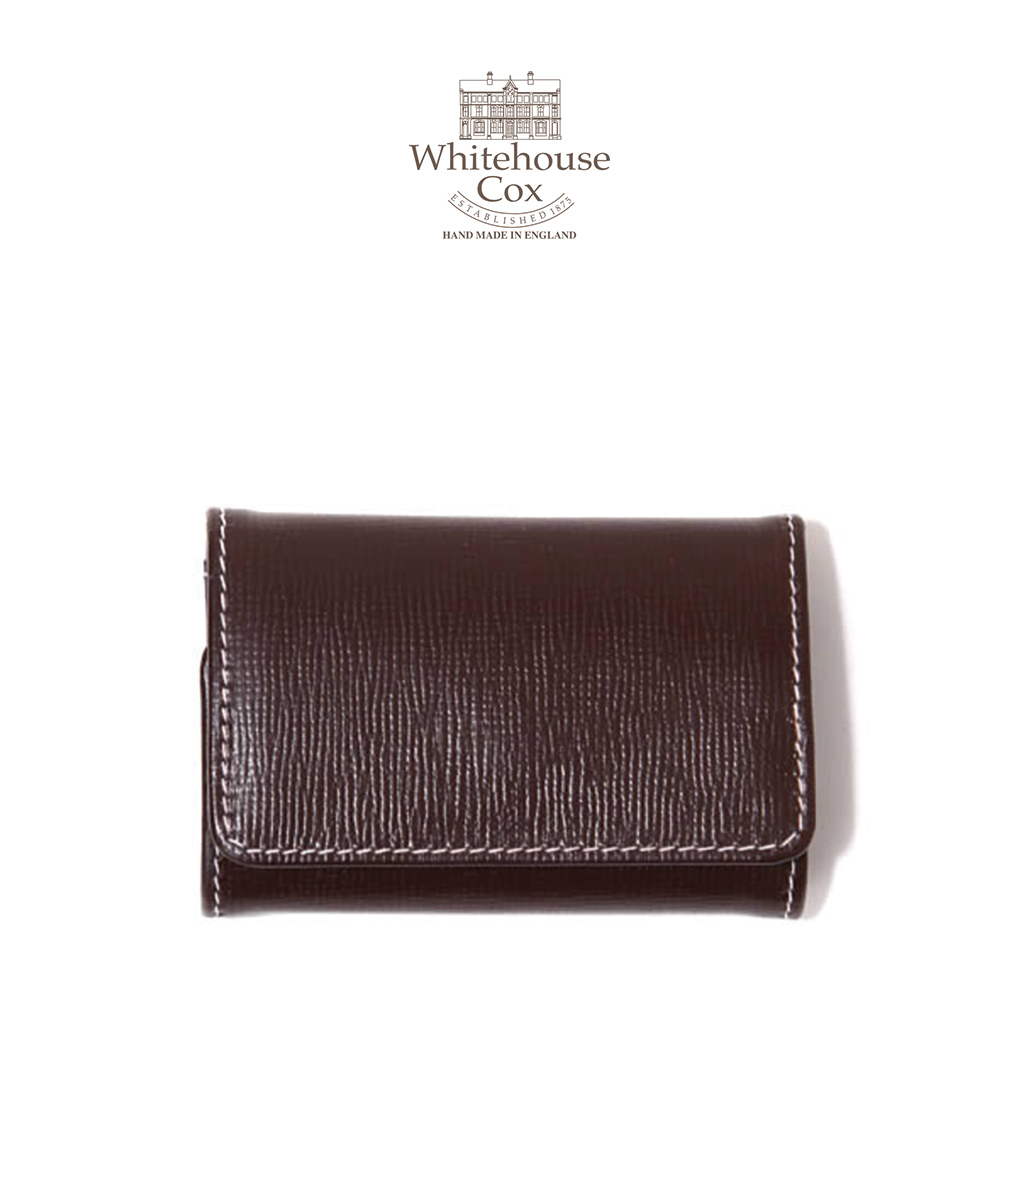 Whitehouse Cox / ホワイトハウスコックス : 【REGENT BRIDLE LEATHER】COIN PURSE/BRIDLE 2TONE : コインパース カードケース付き ウォレット レザー ギフトラッピング可能 : S-9084-REGENT-BL【MUS】